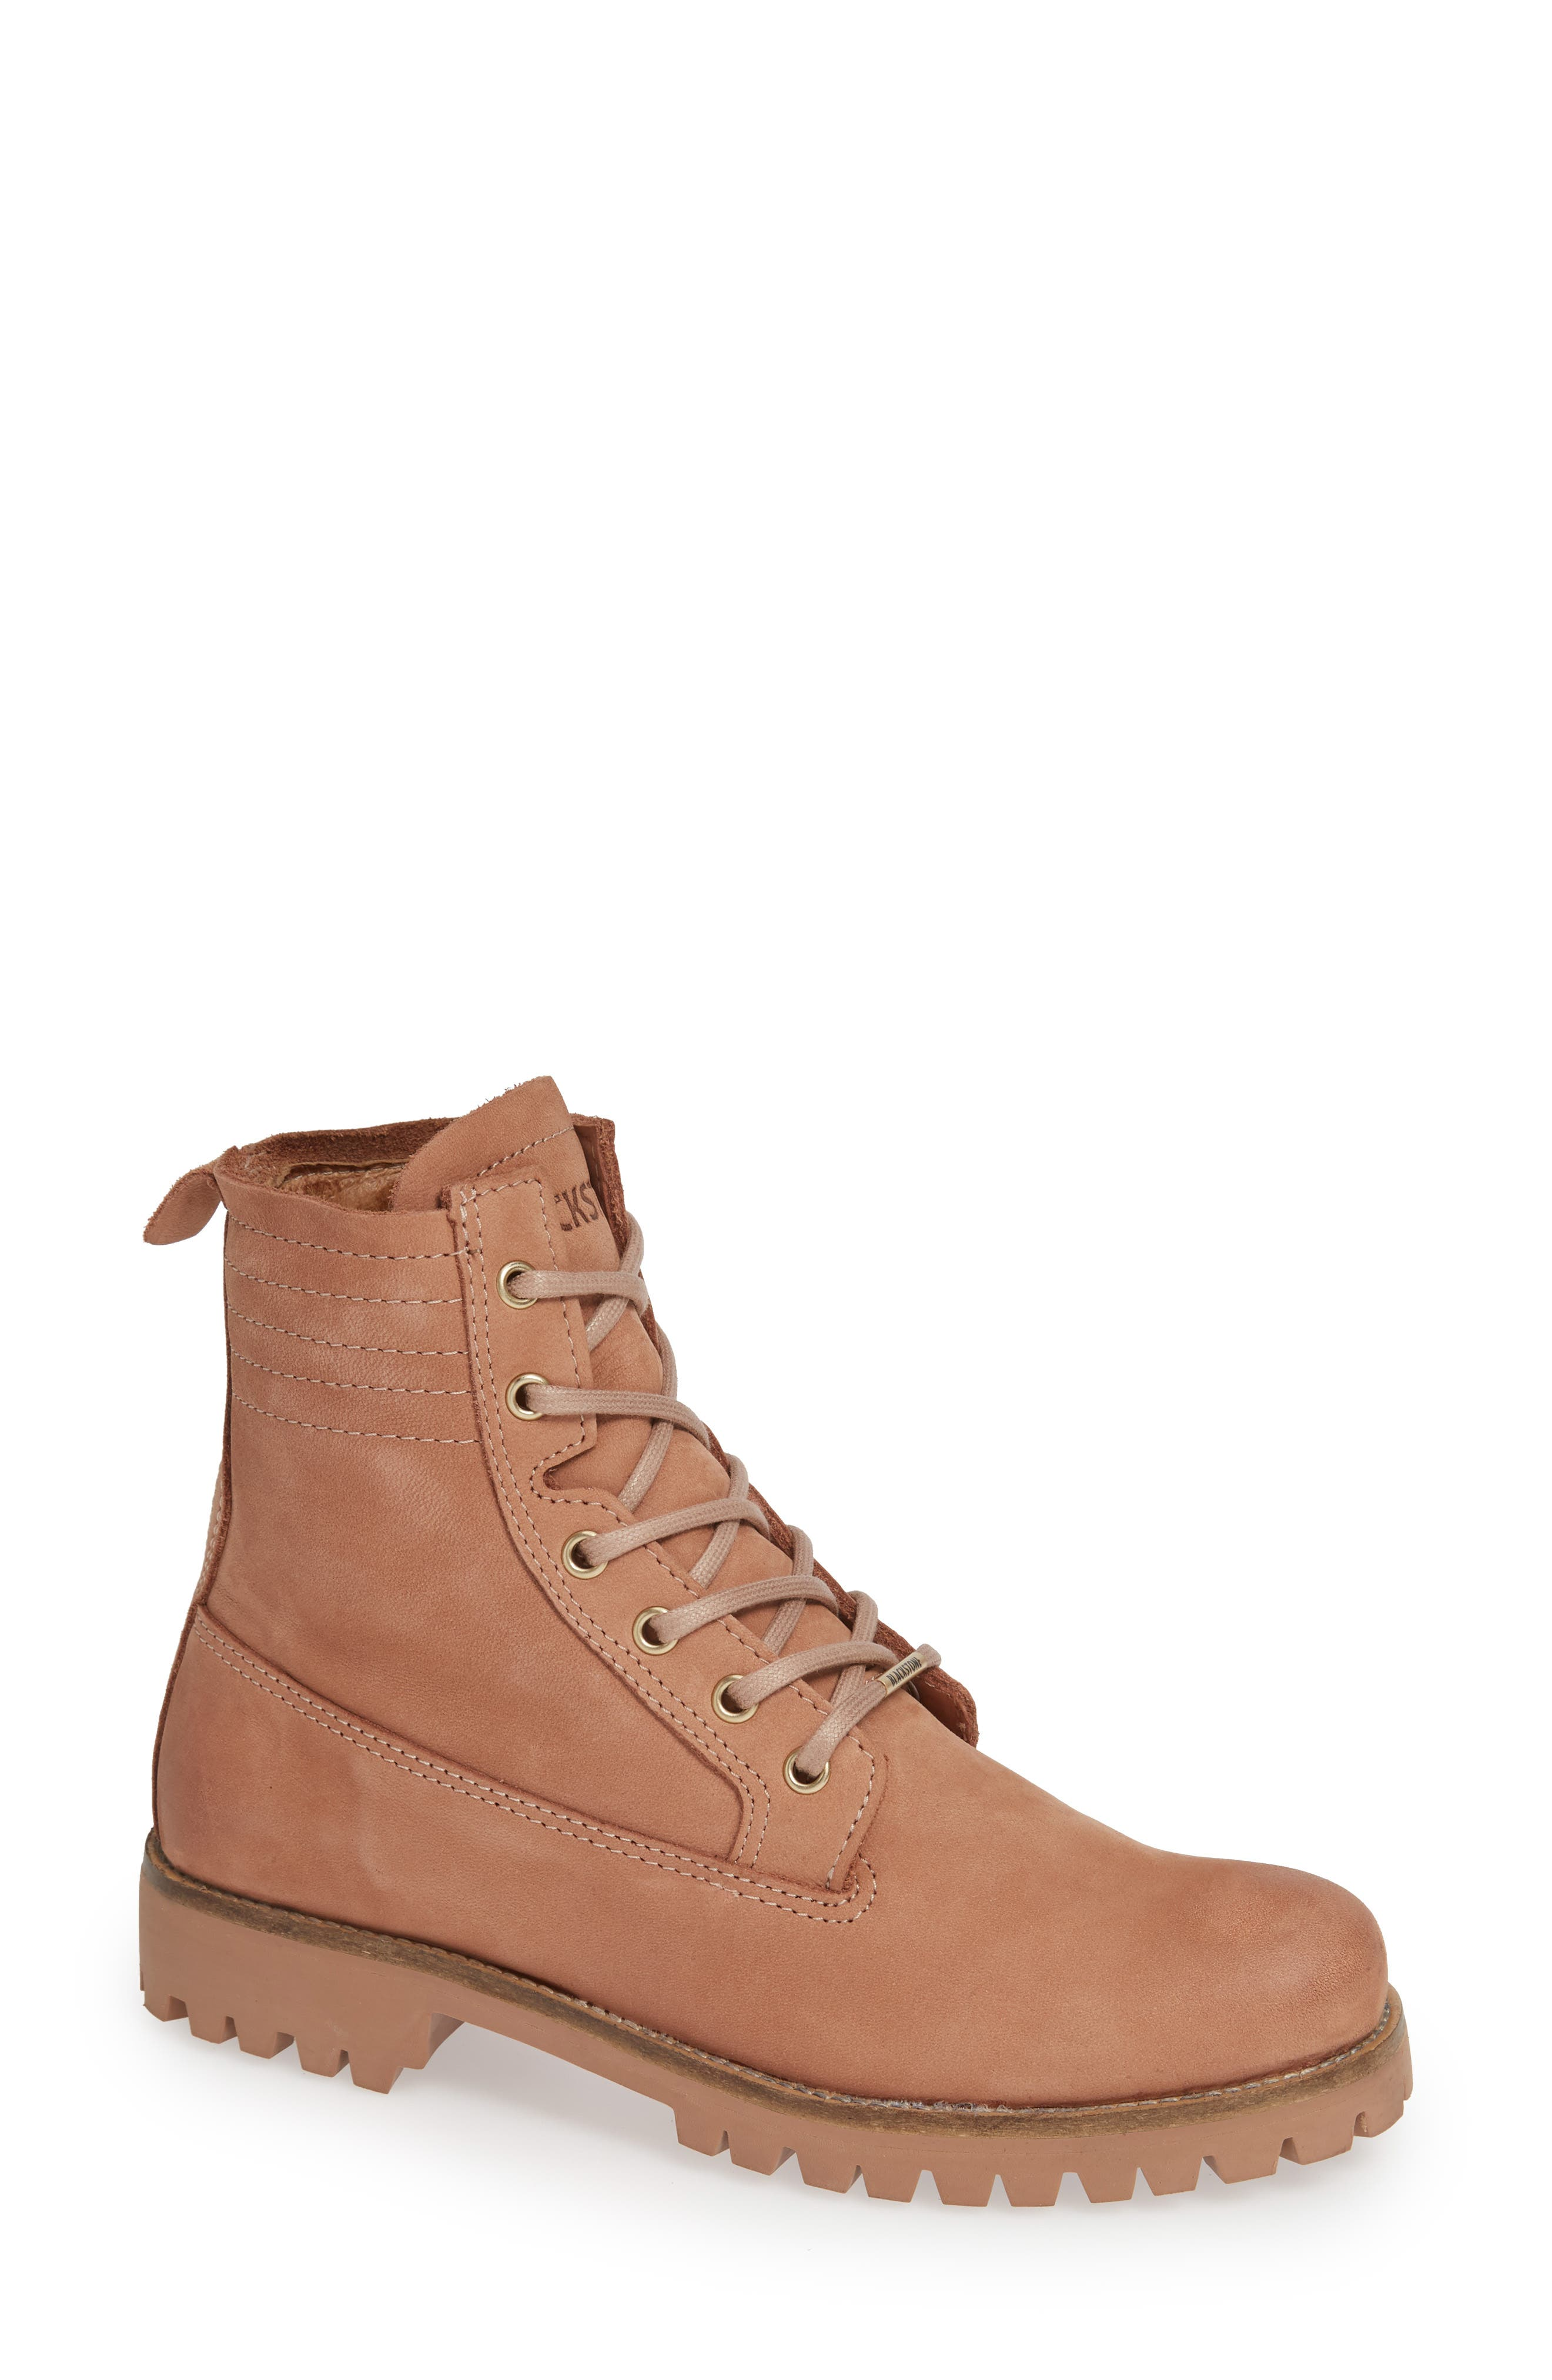 Blackstone Ol23 Lace-Up Boot, Beige